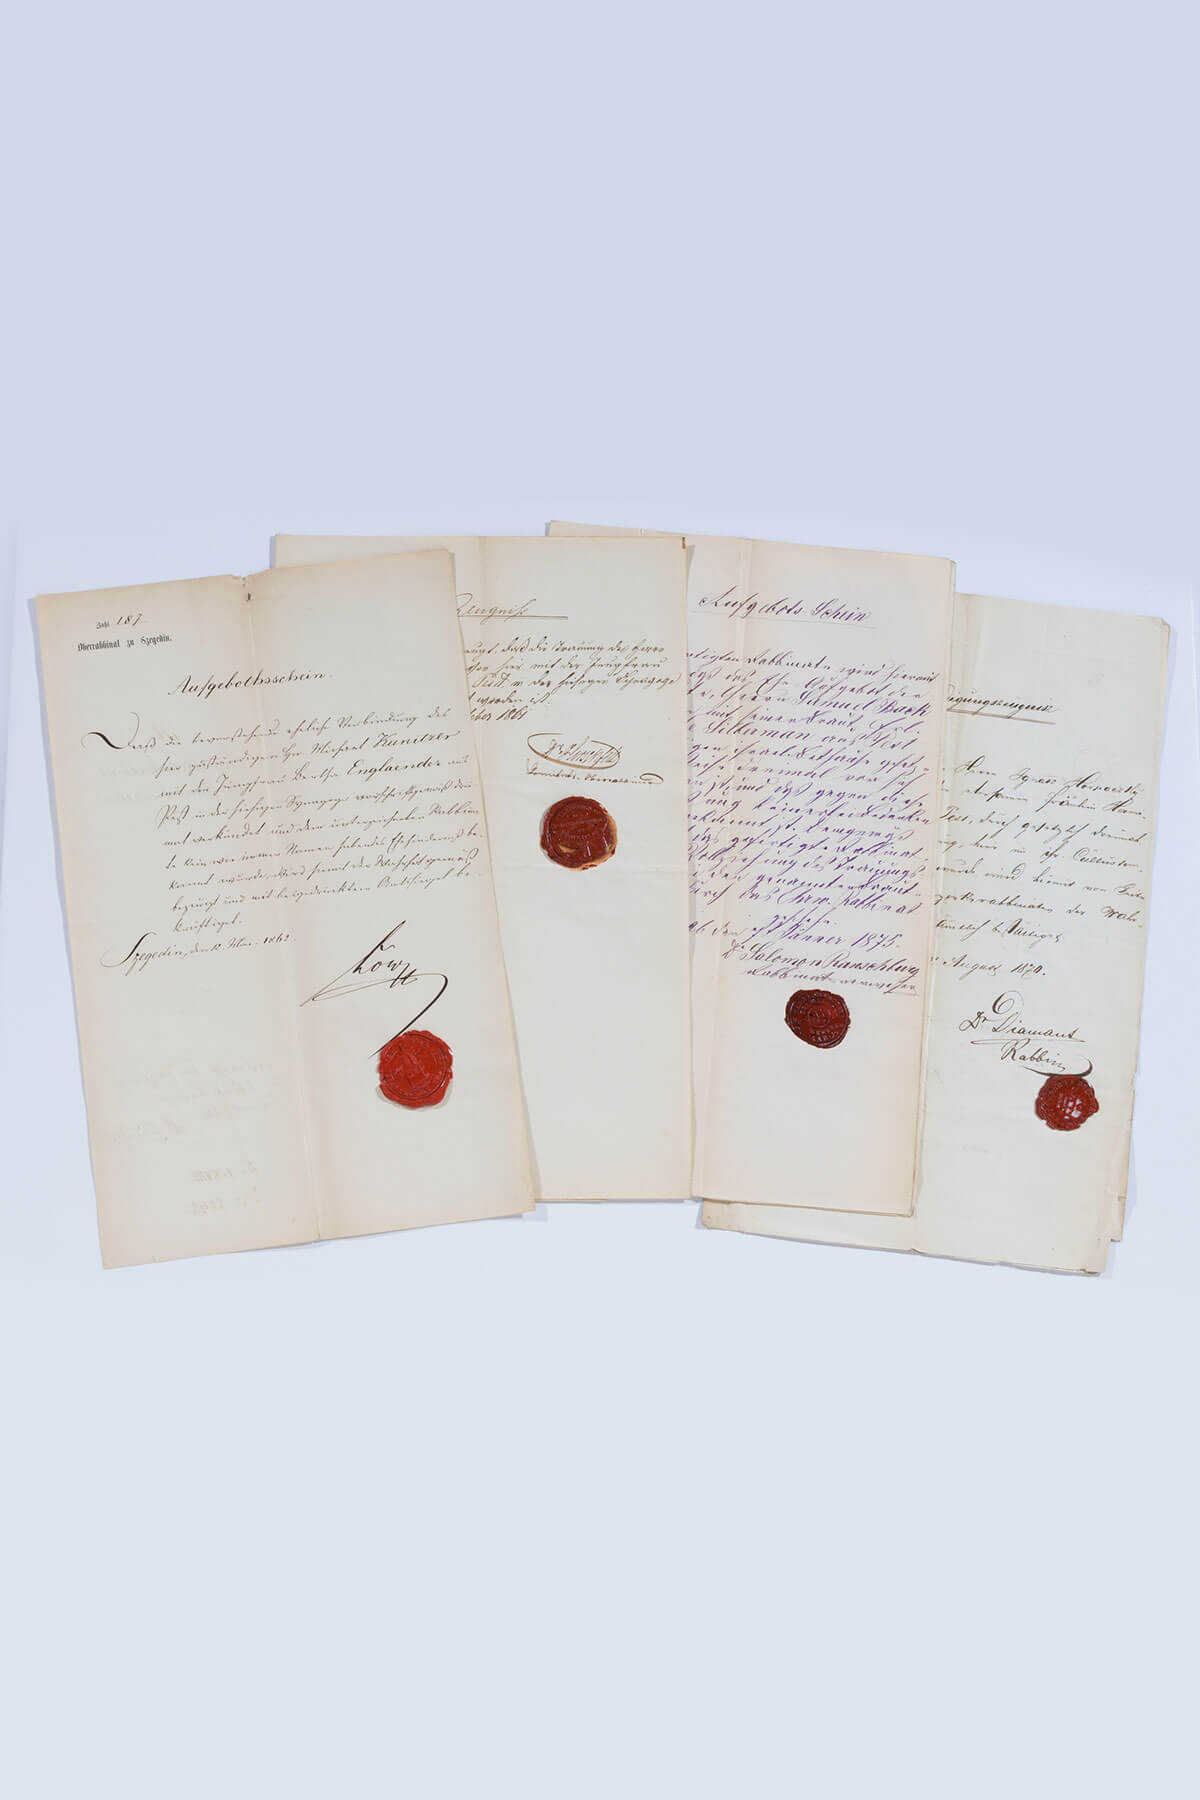 167. A Collection of Letters And Documents from the Kultusgemeinde